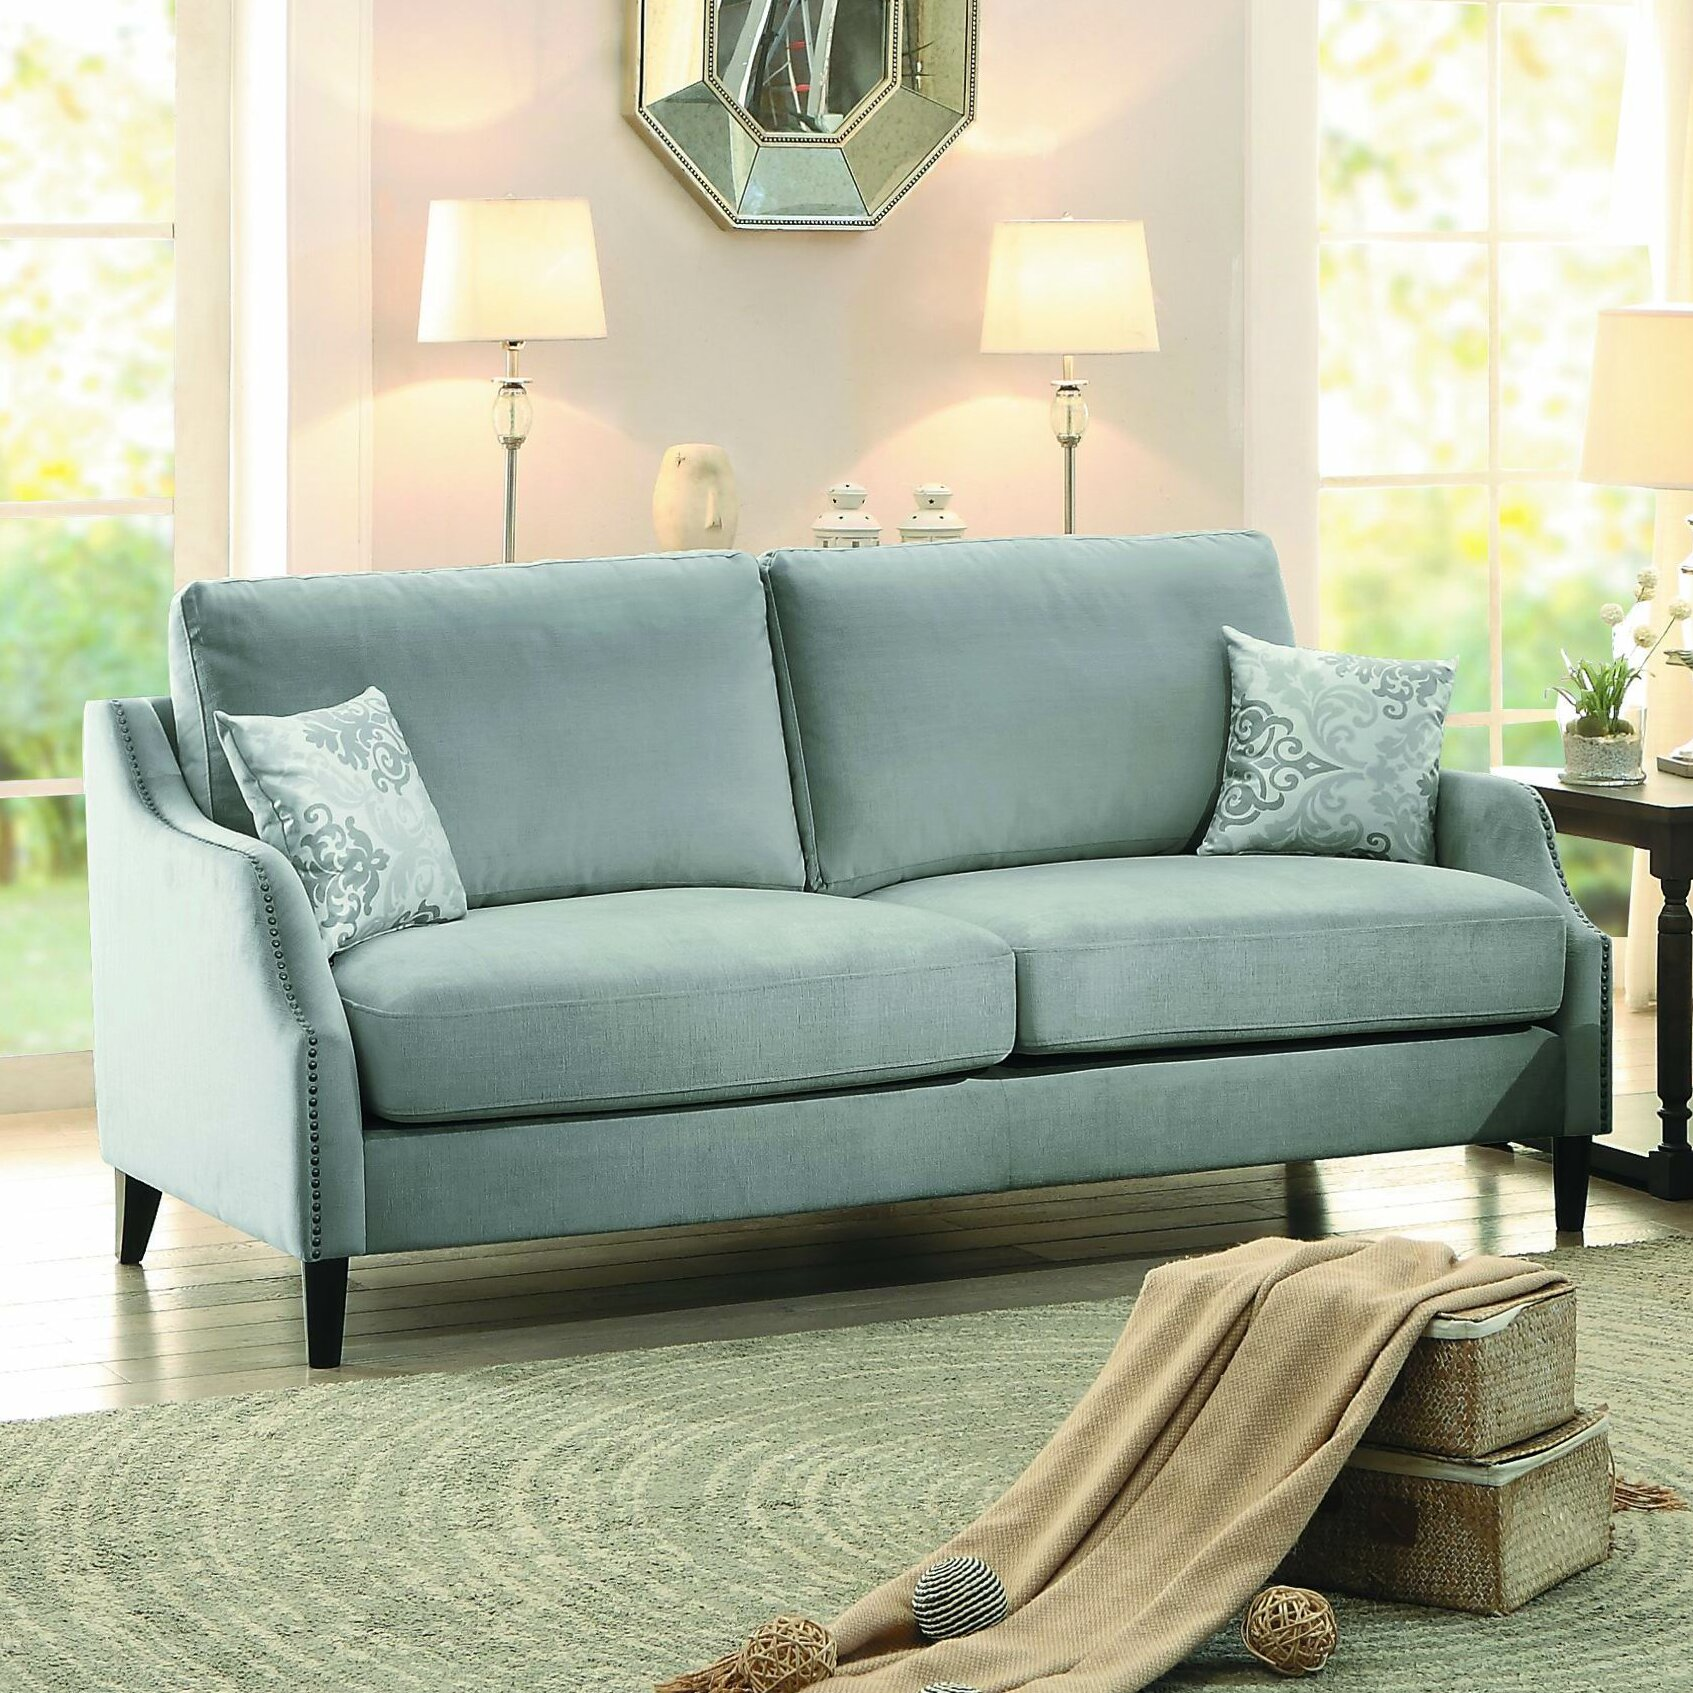 Homelegance Banburry Living Room Collection Wayfair